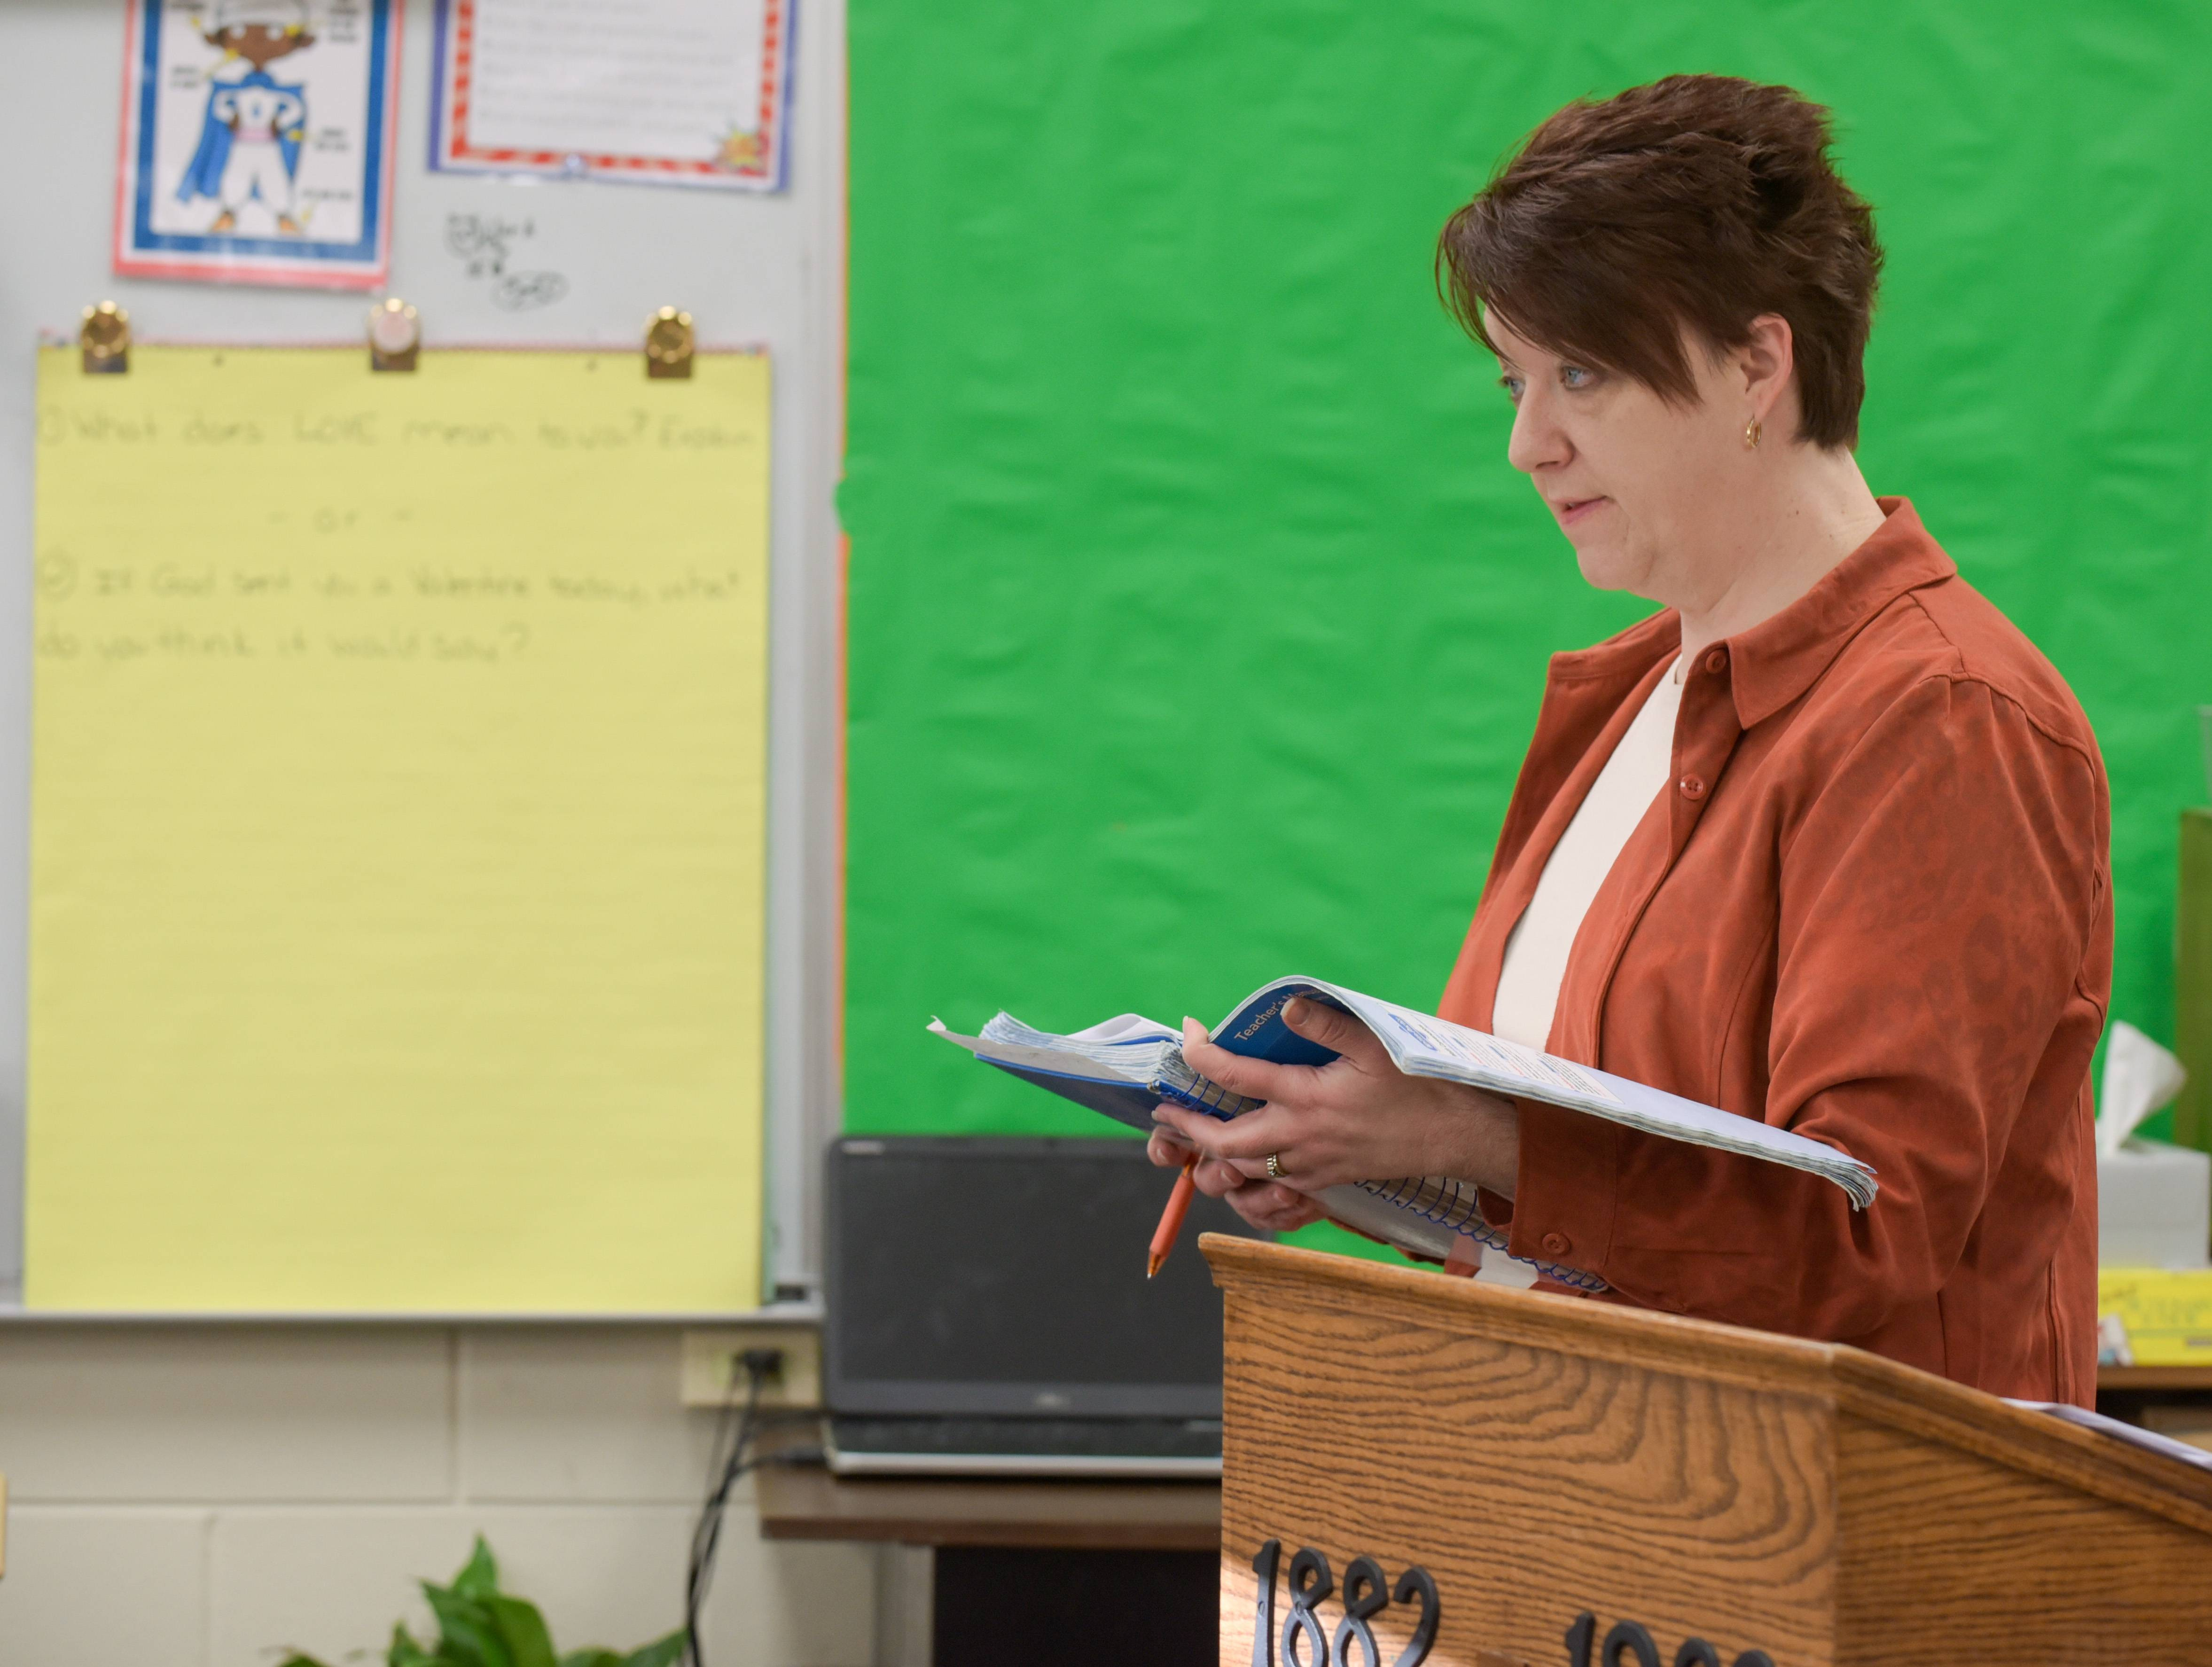 Penny Suydam teaches fifth grade at Immanuel Lutheran School in Batavia. Her dedication to them extends outside the classroom, prompting a fellow teacher to nominate her for a national award.